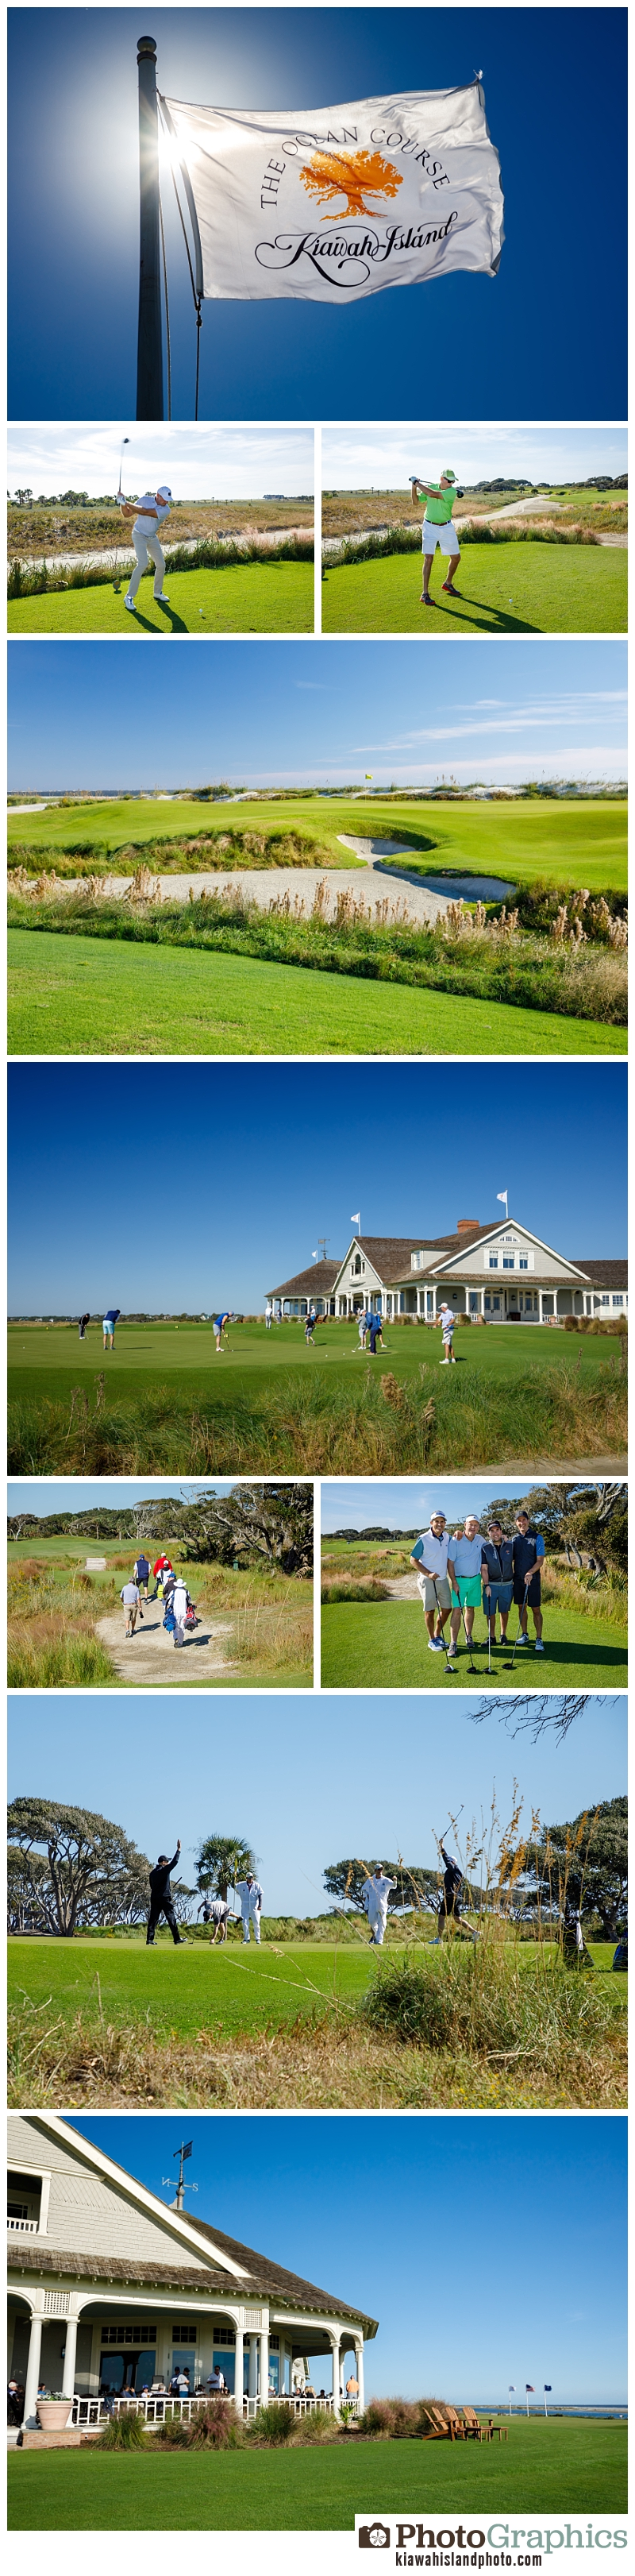 event photography Kiawah Island Golf Resort at the Ocean Course. group golfing together